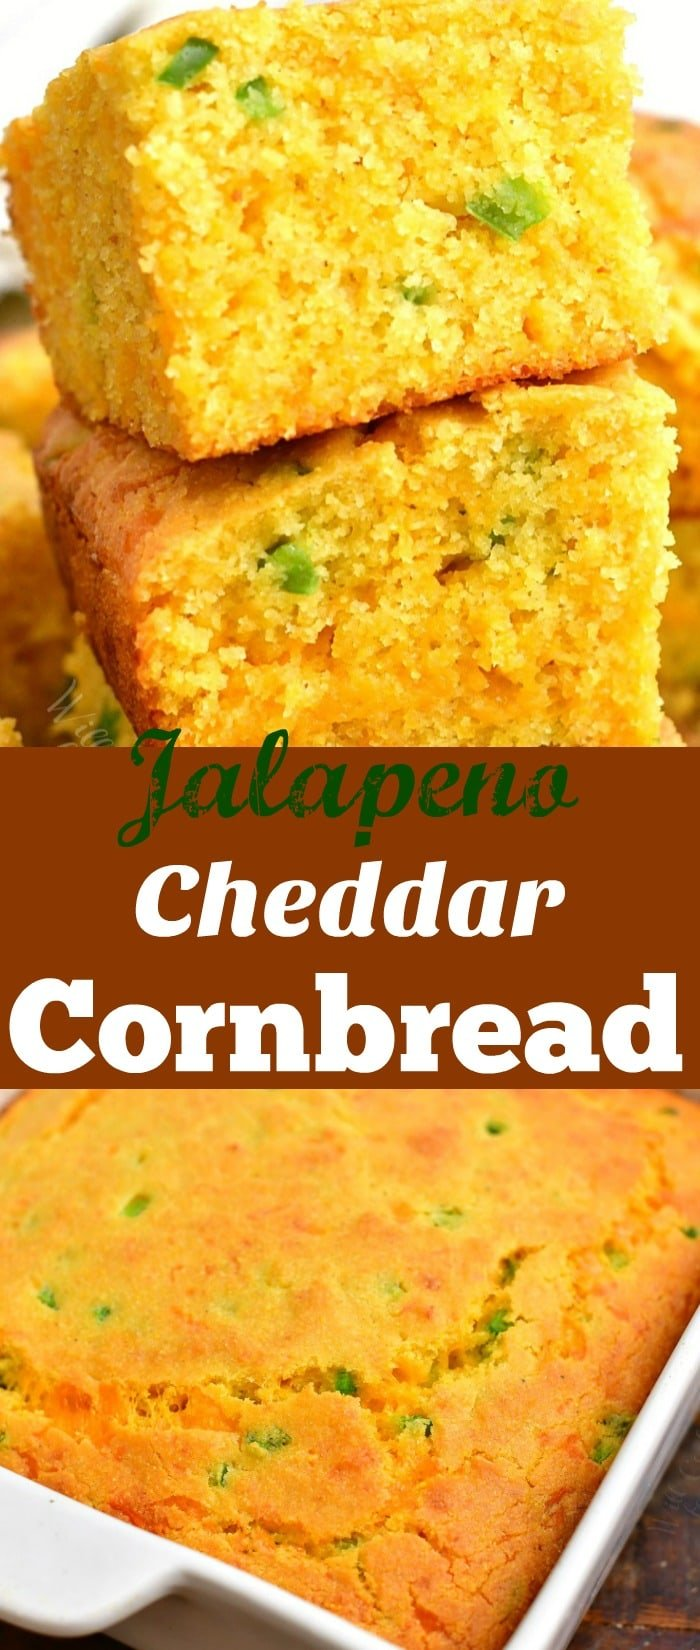 titled photo collage - Jalapeno Cheddar Cornbread